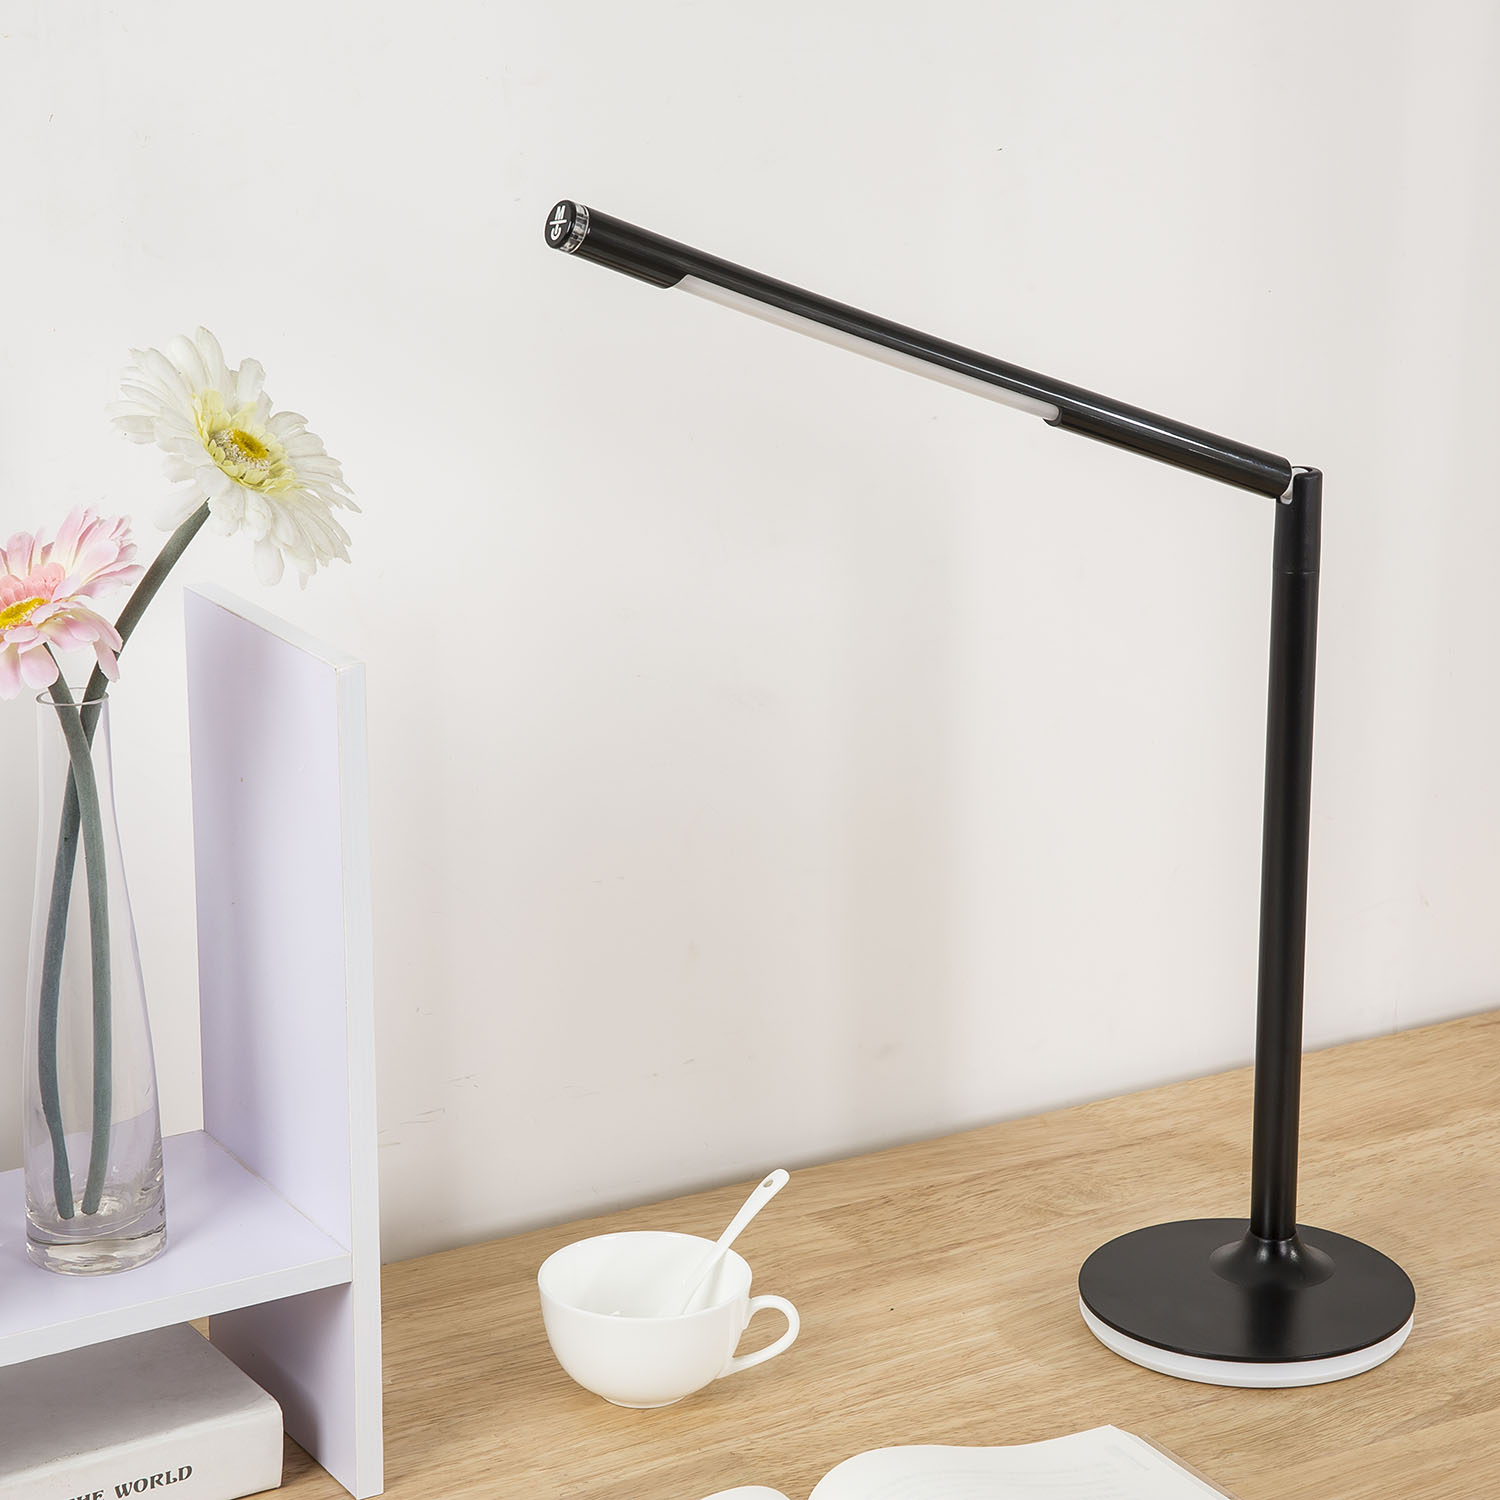 LED Desk Lamp With USB Charging Port Eye- Care Dimmable Lamp 3 Color Temperatures  LED Creative Gift Table Lamp